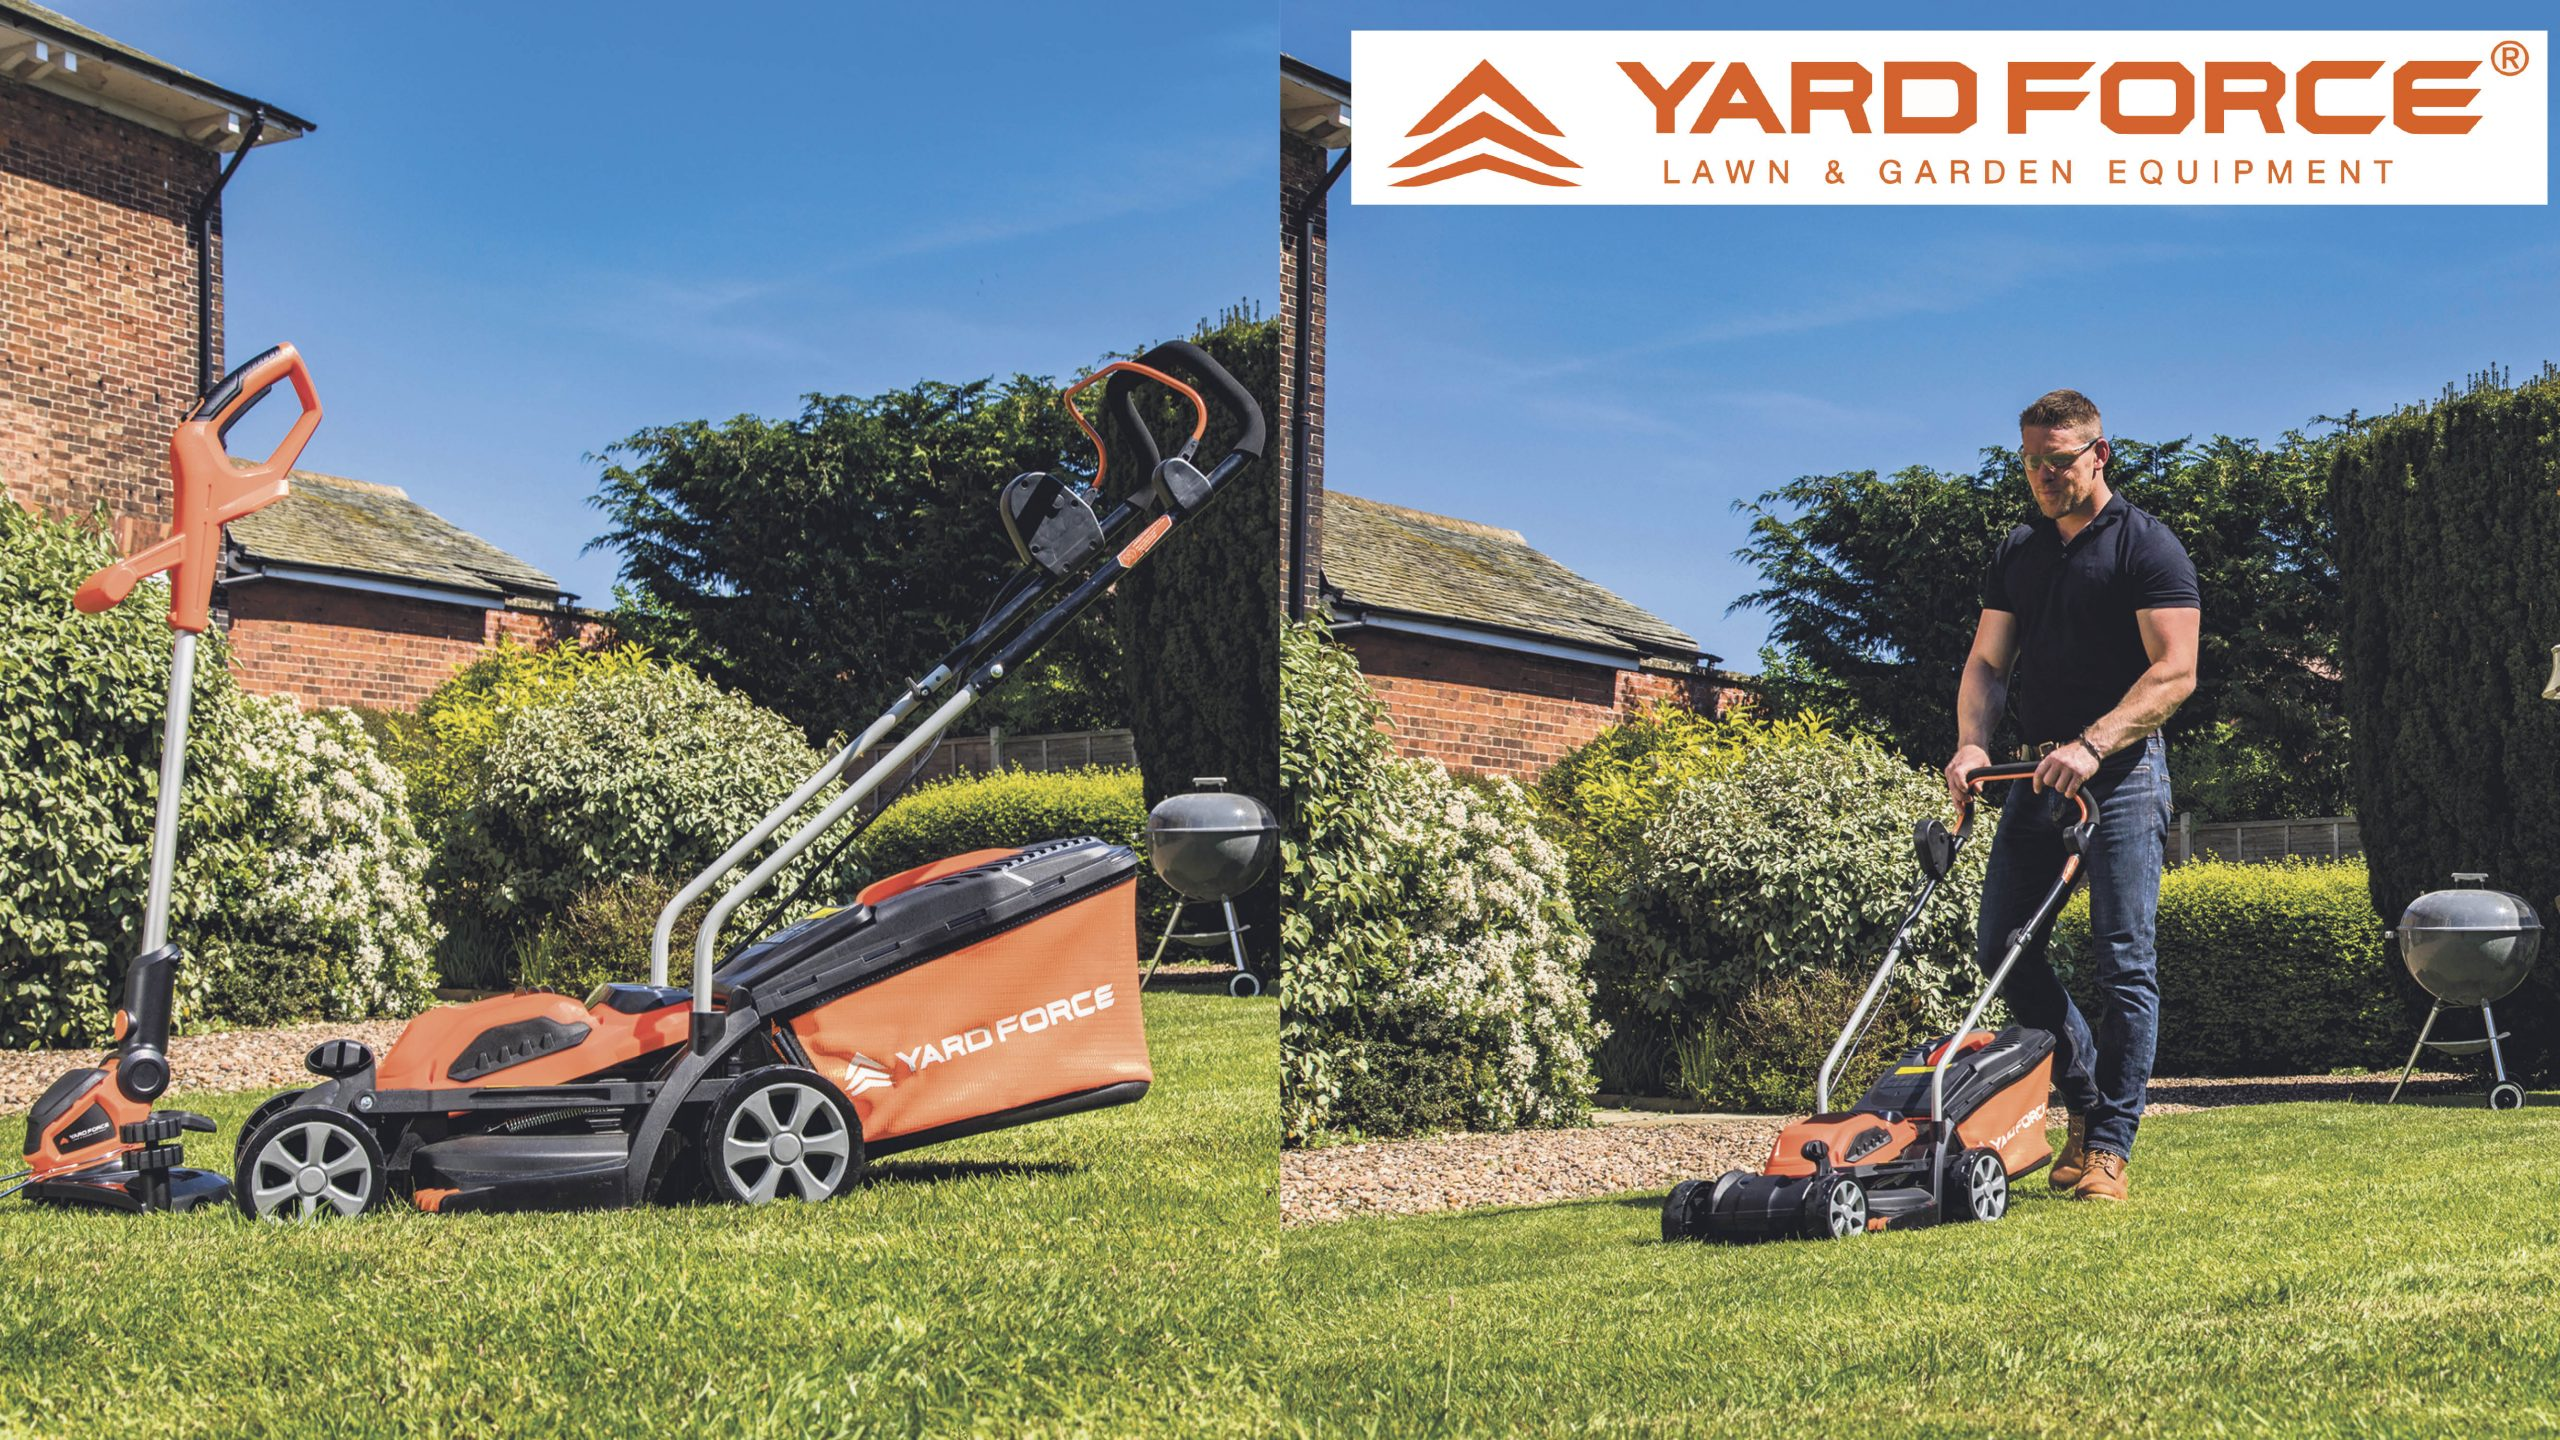 Win a 40V cordless lawnmower and grass trimmer Worth £169.99!